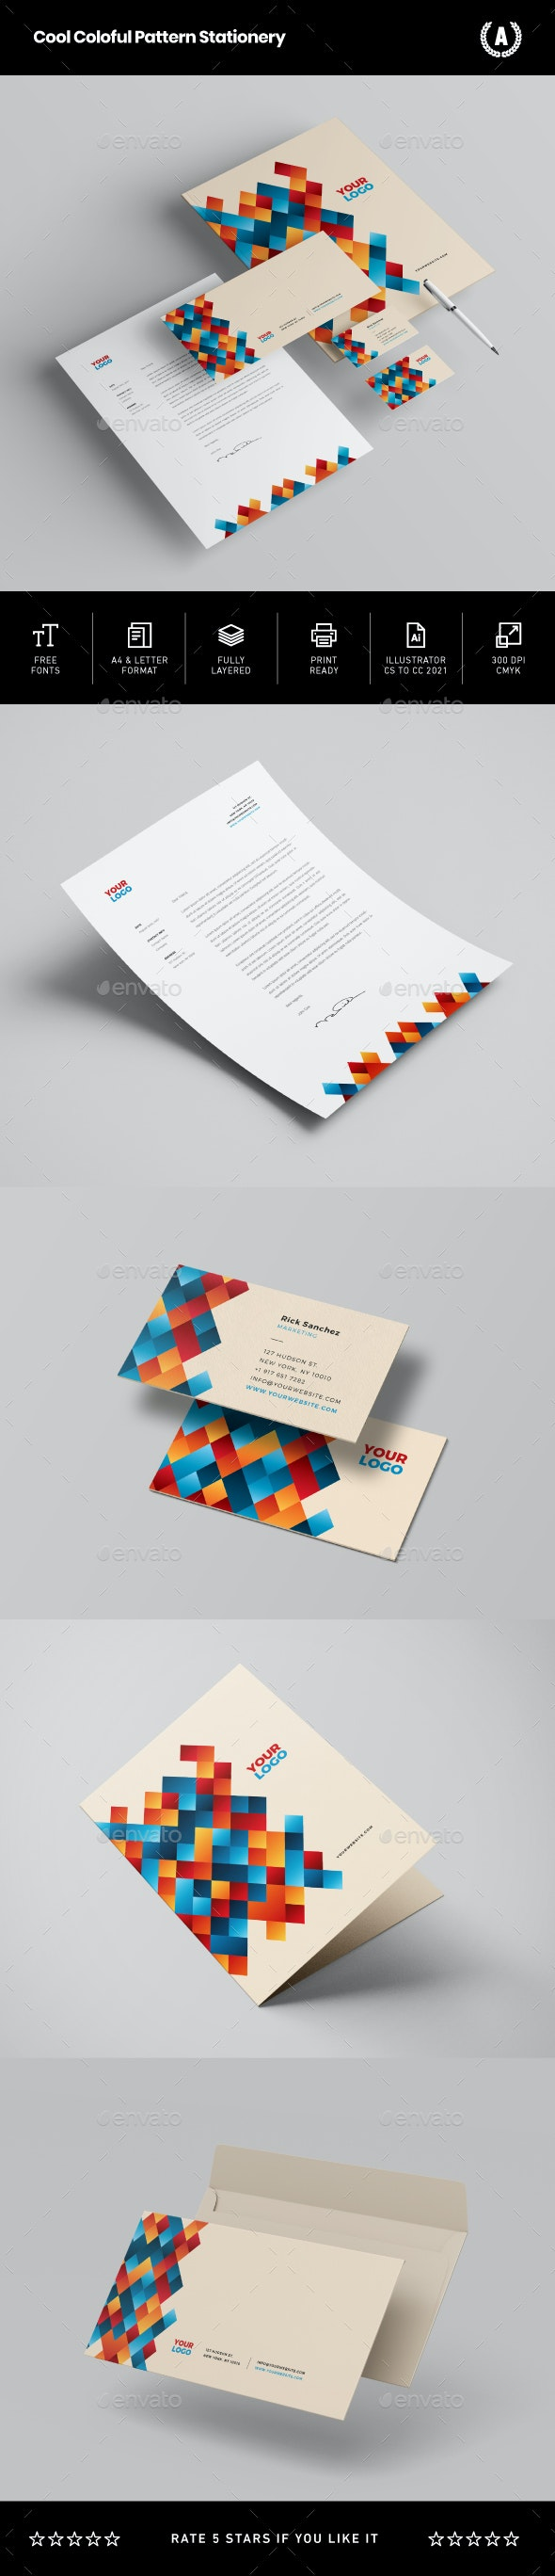 Cool Colorful Pattern Stationery - Stationery Print Templates